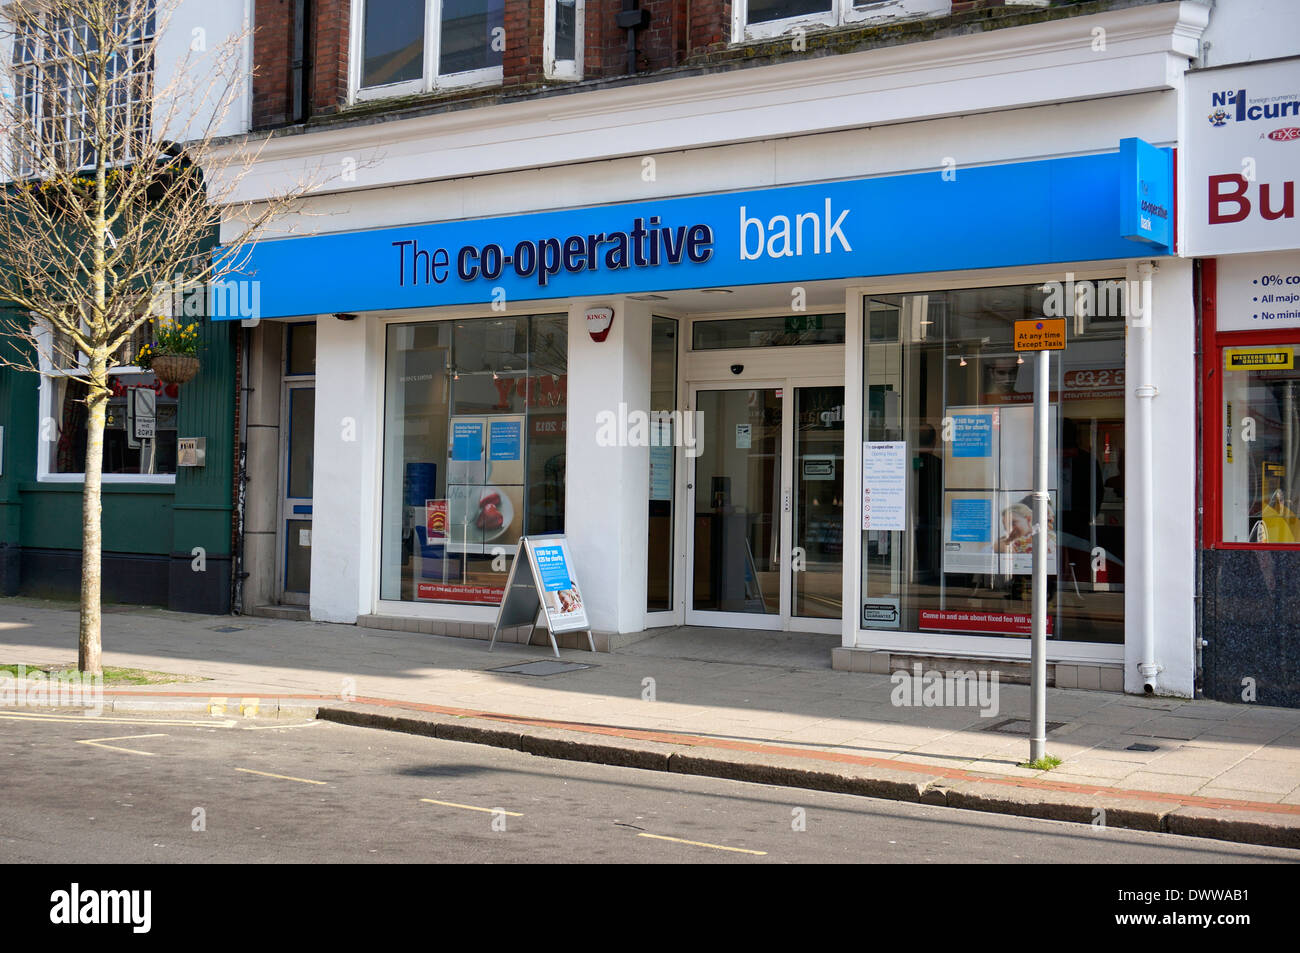 The Co-operative Bank Worthing West Sussex UK - Stock Image